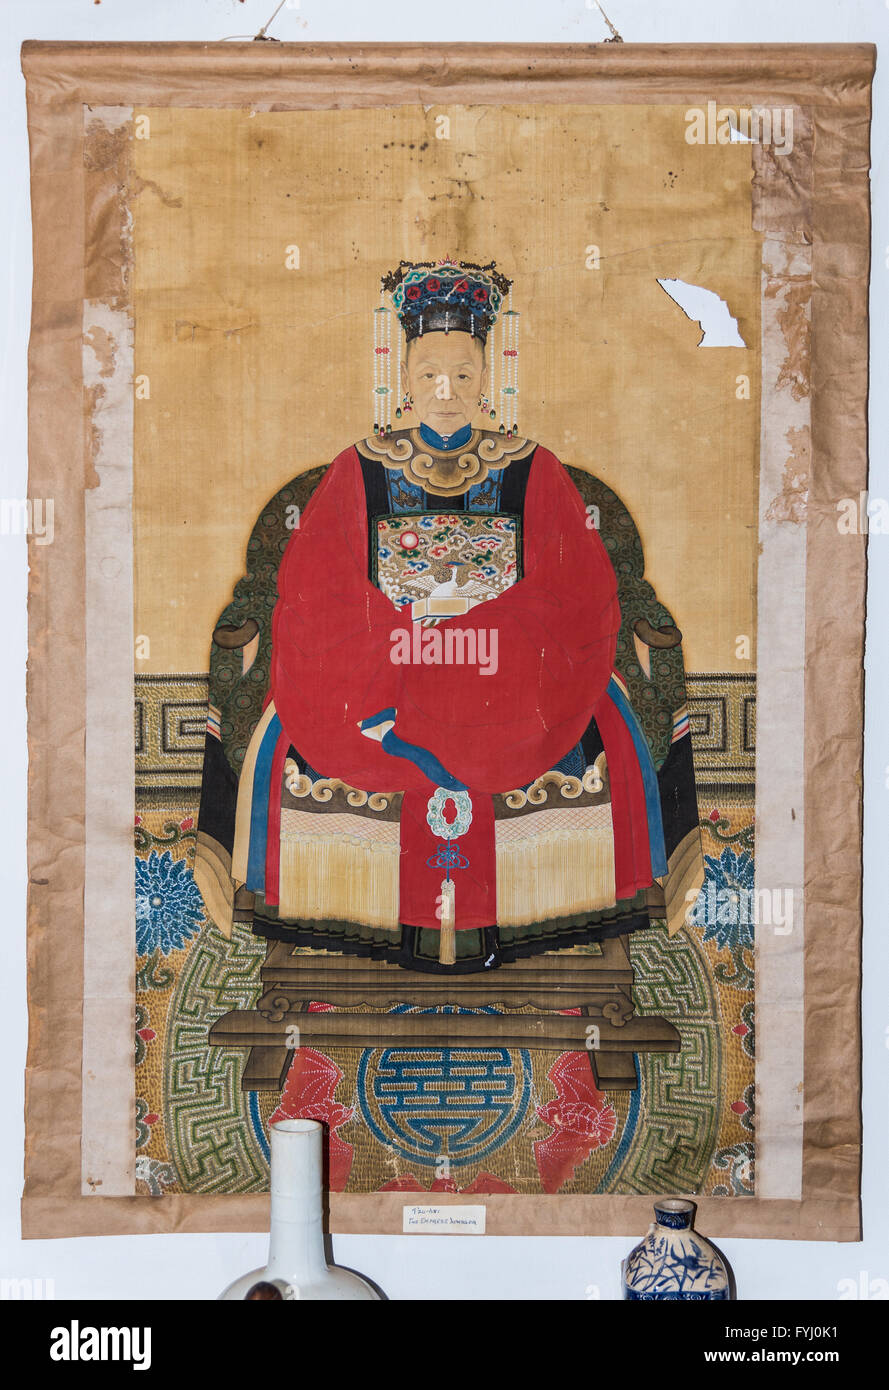 Silk scroll portrait of Empress Dowager Cixi (1835 - 1908 A.D.) of Qing Dynasty, China. - Stock Image